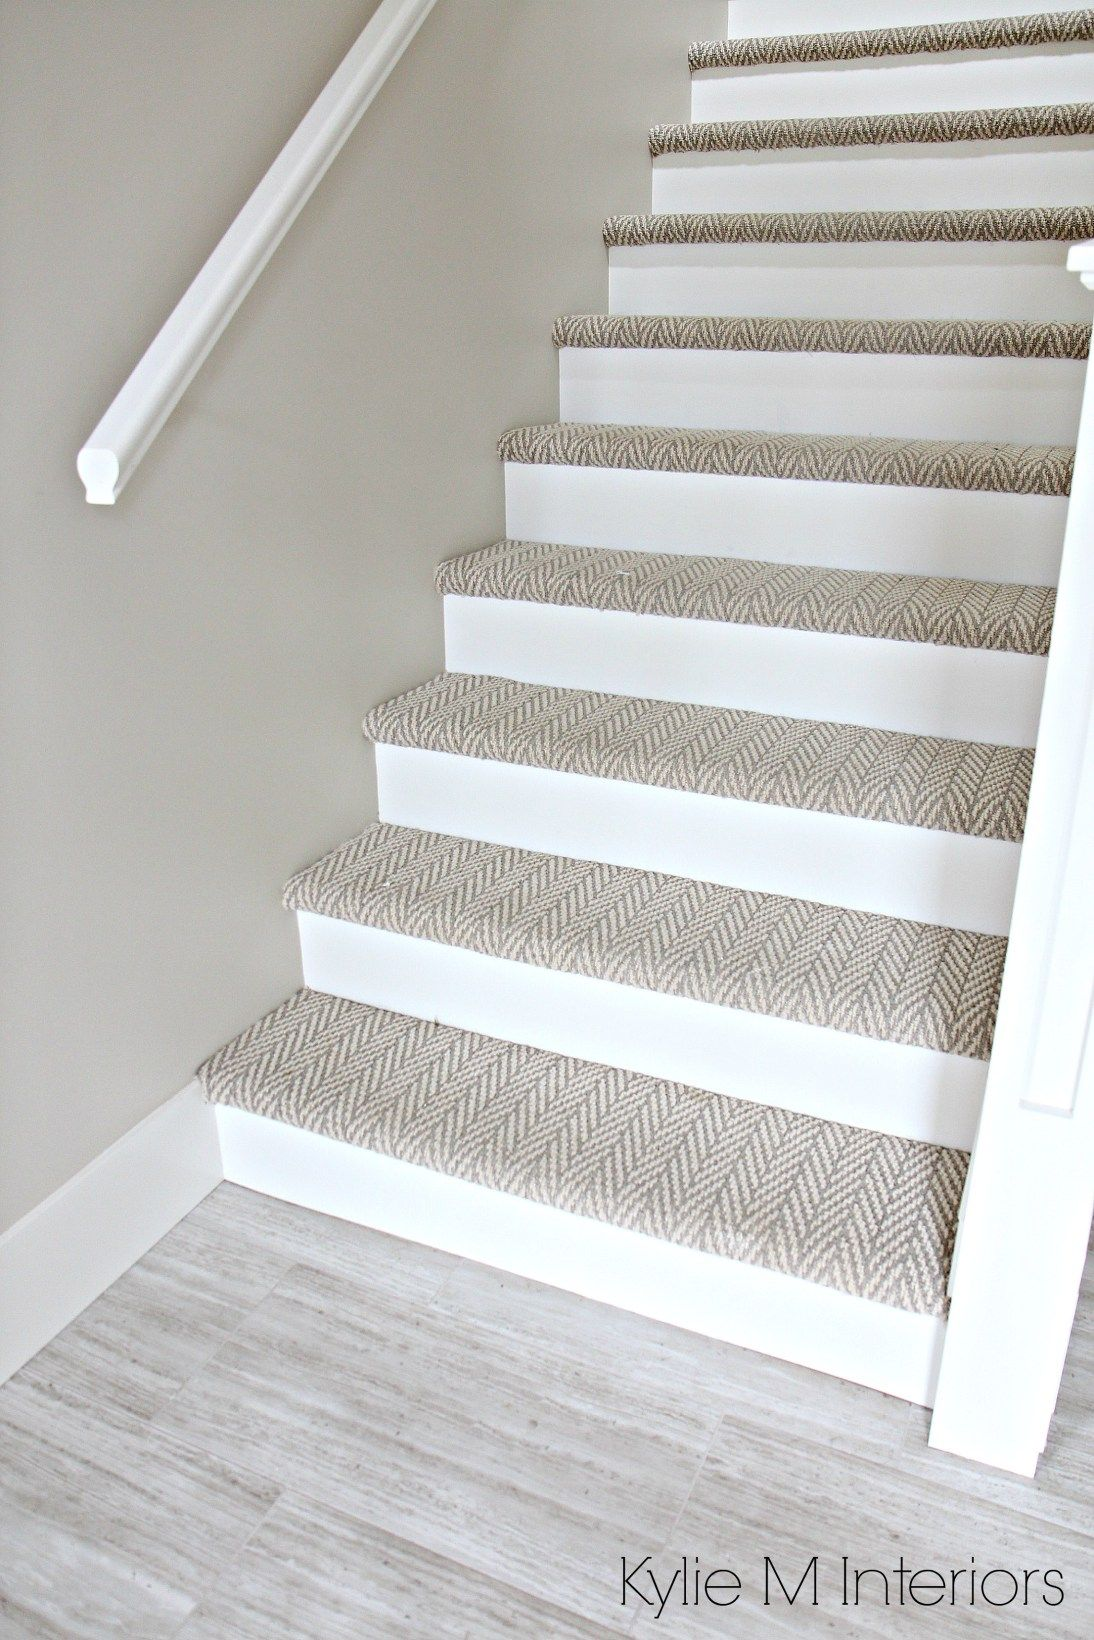 Carpeting stairs stairs with carpet herringbone treads and painted white risers, looks like  a XIZCBVH